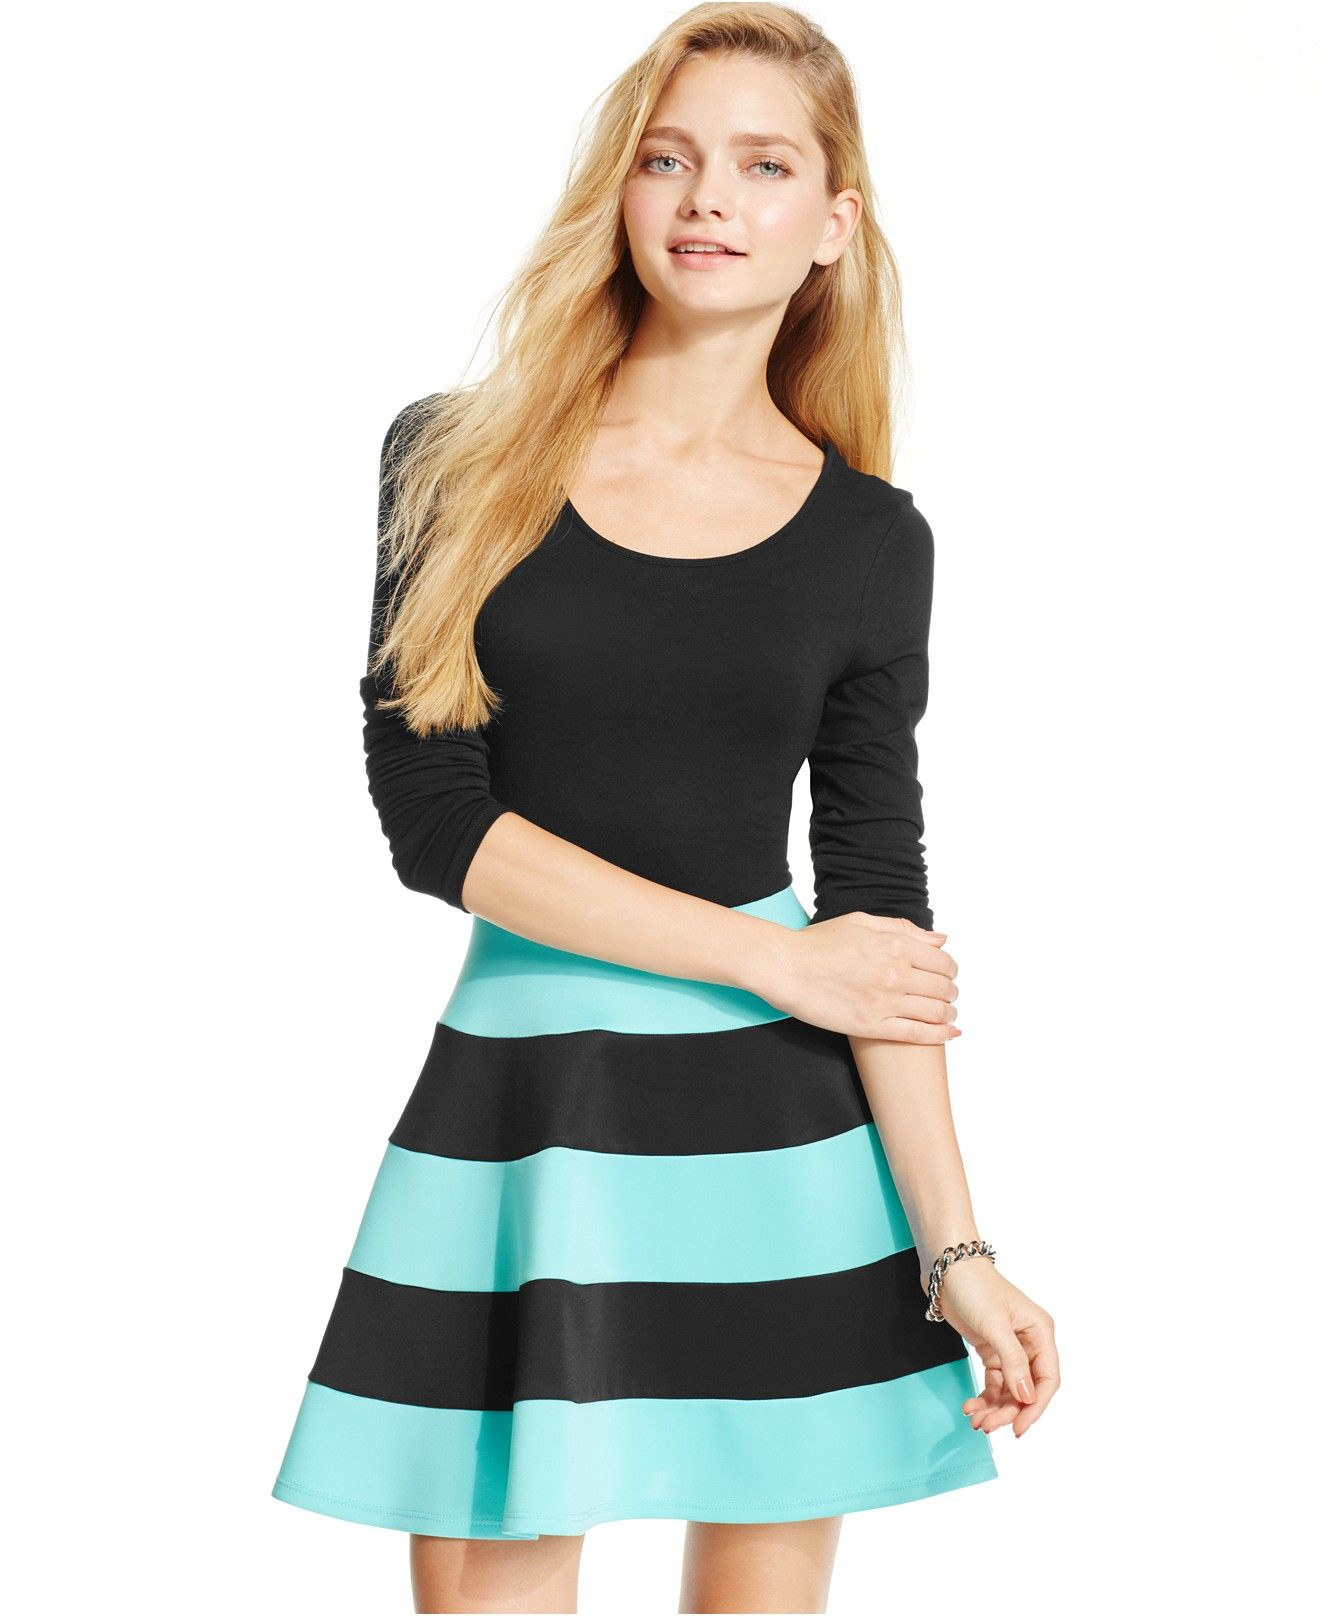 b868f7c3bd53d Trixxi Juniors  Long-Sleeve Colorblock Skater Dress - Juniors Dresses -  Macy s